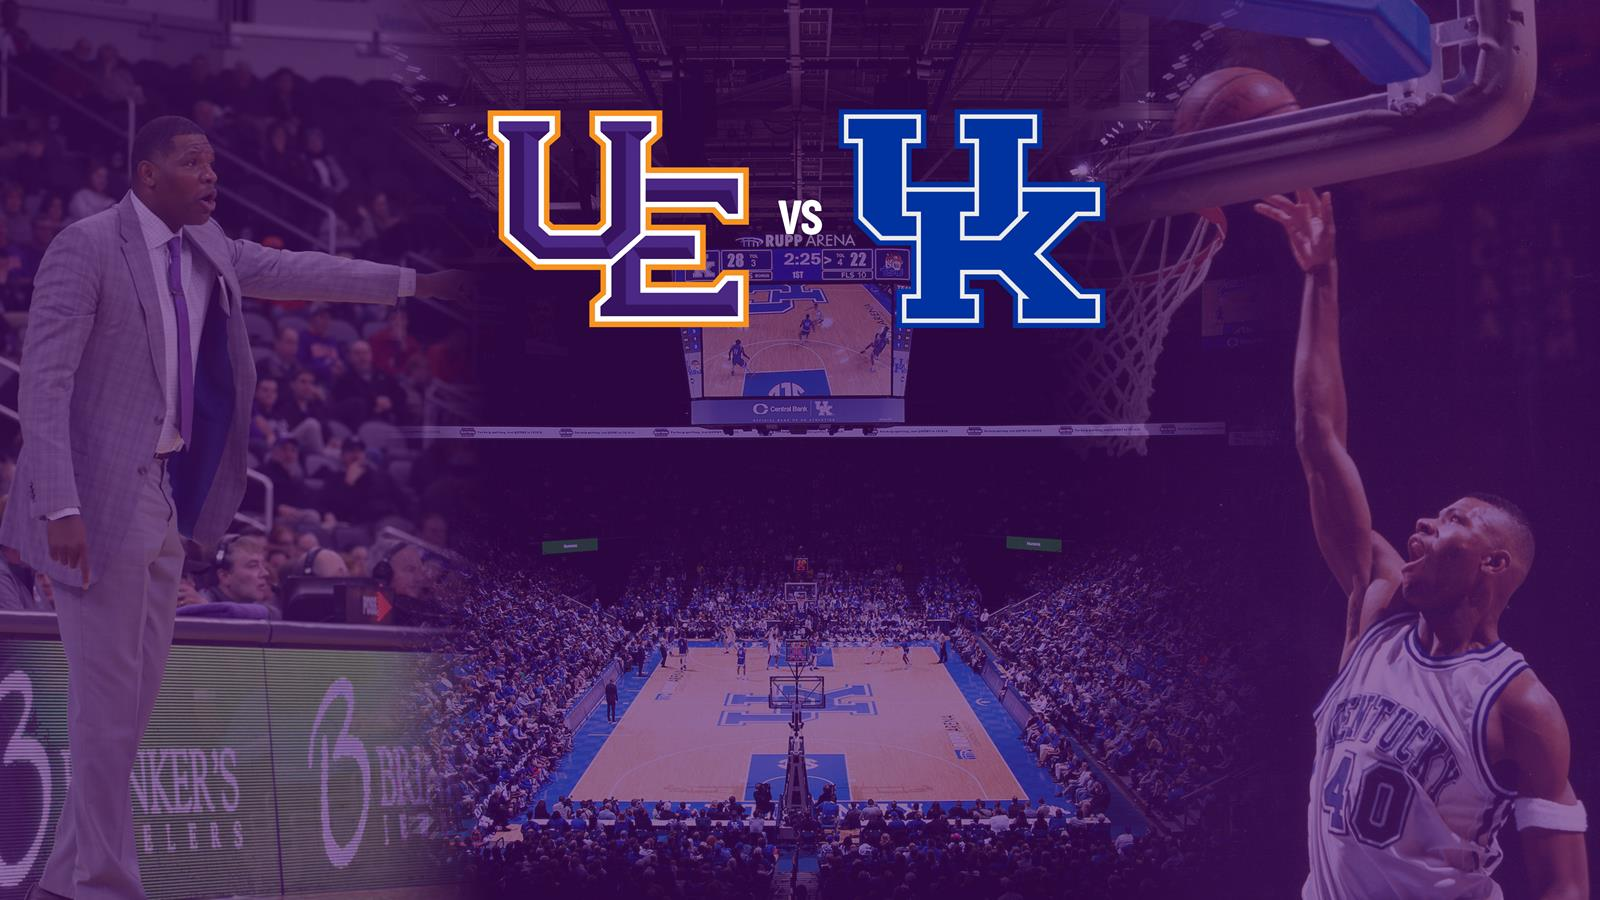 photograph relating to Printable Kentucky Basketball Schedule named Mens basketball provides Kentucky in the direction of 2019-20 routine